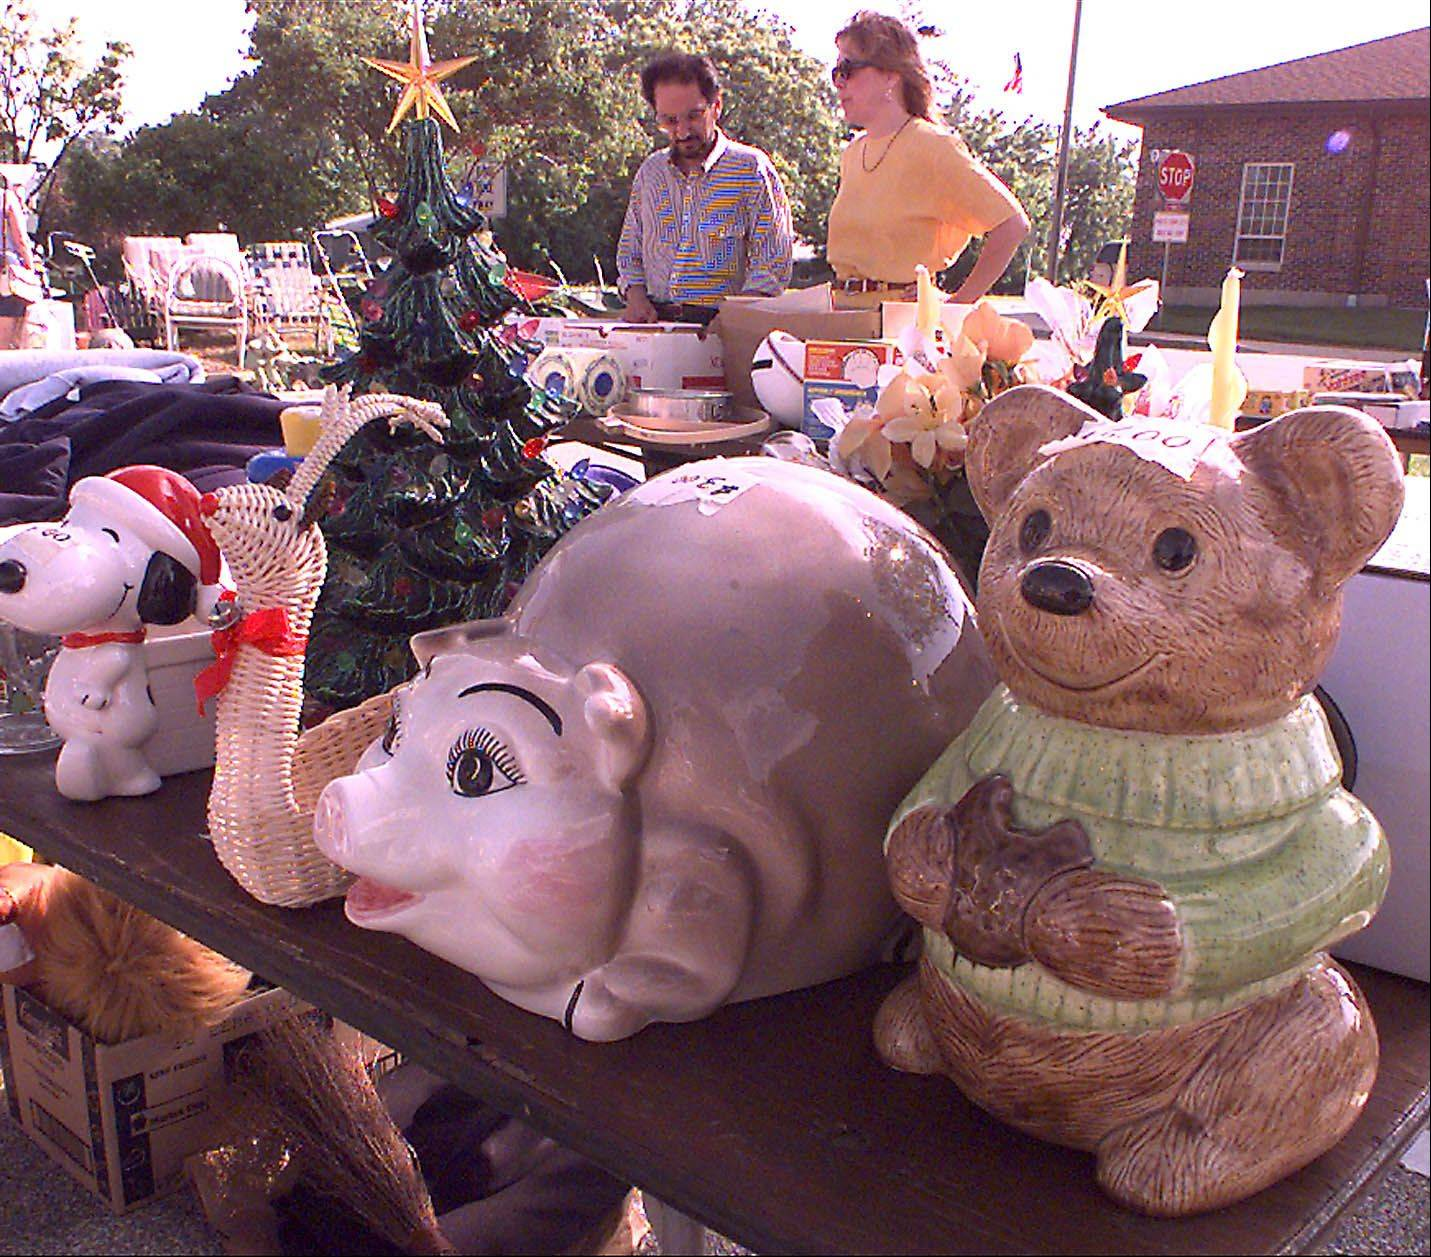 Shoppers never know what goodies and bargains they'll find at Lisle's annual Trash and Treasures sale.